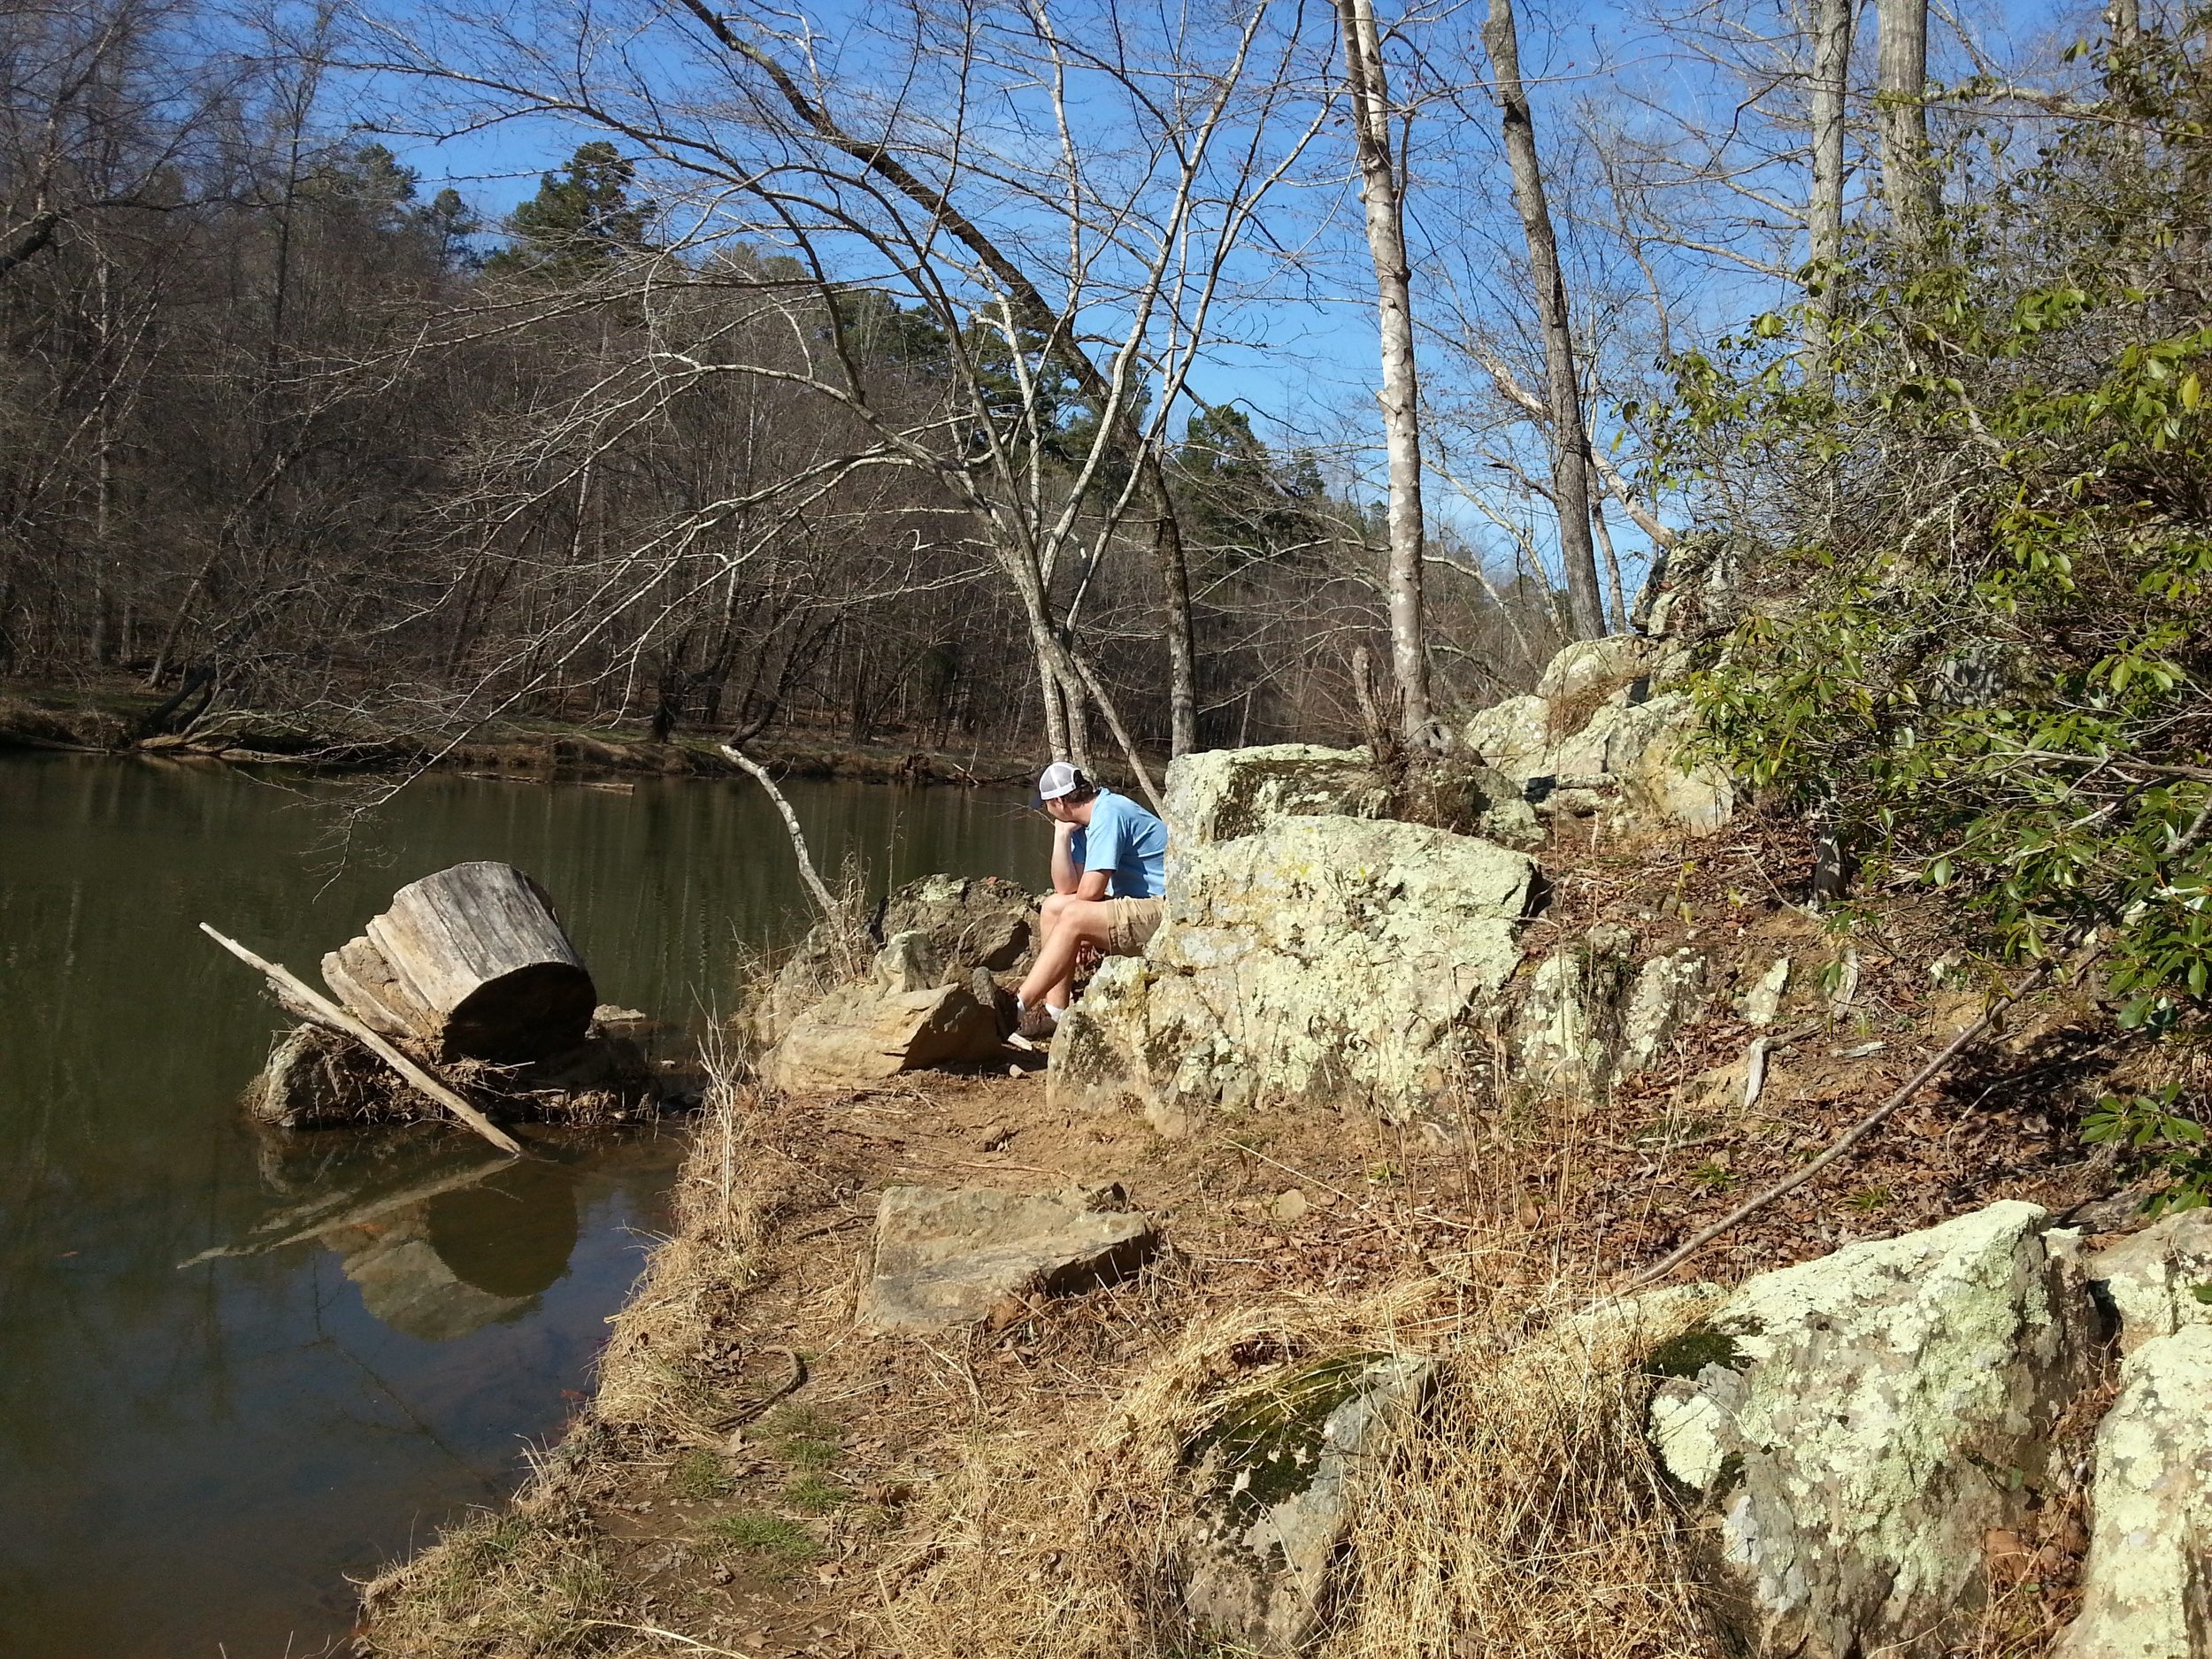 Checking out the river at West Point on the Eno Park